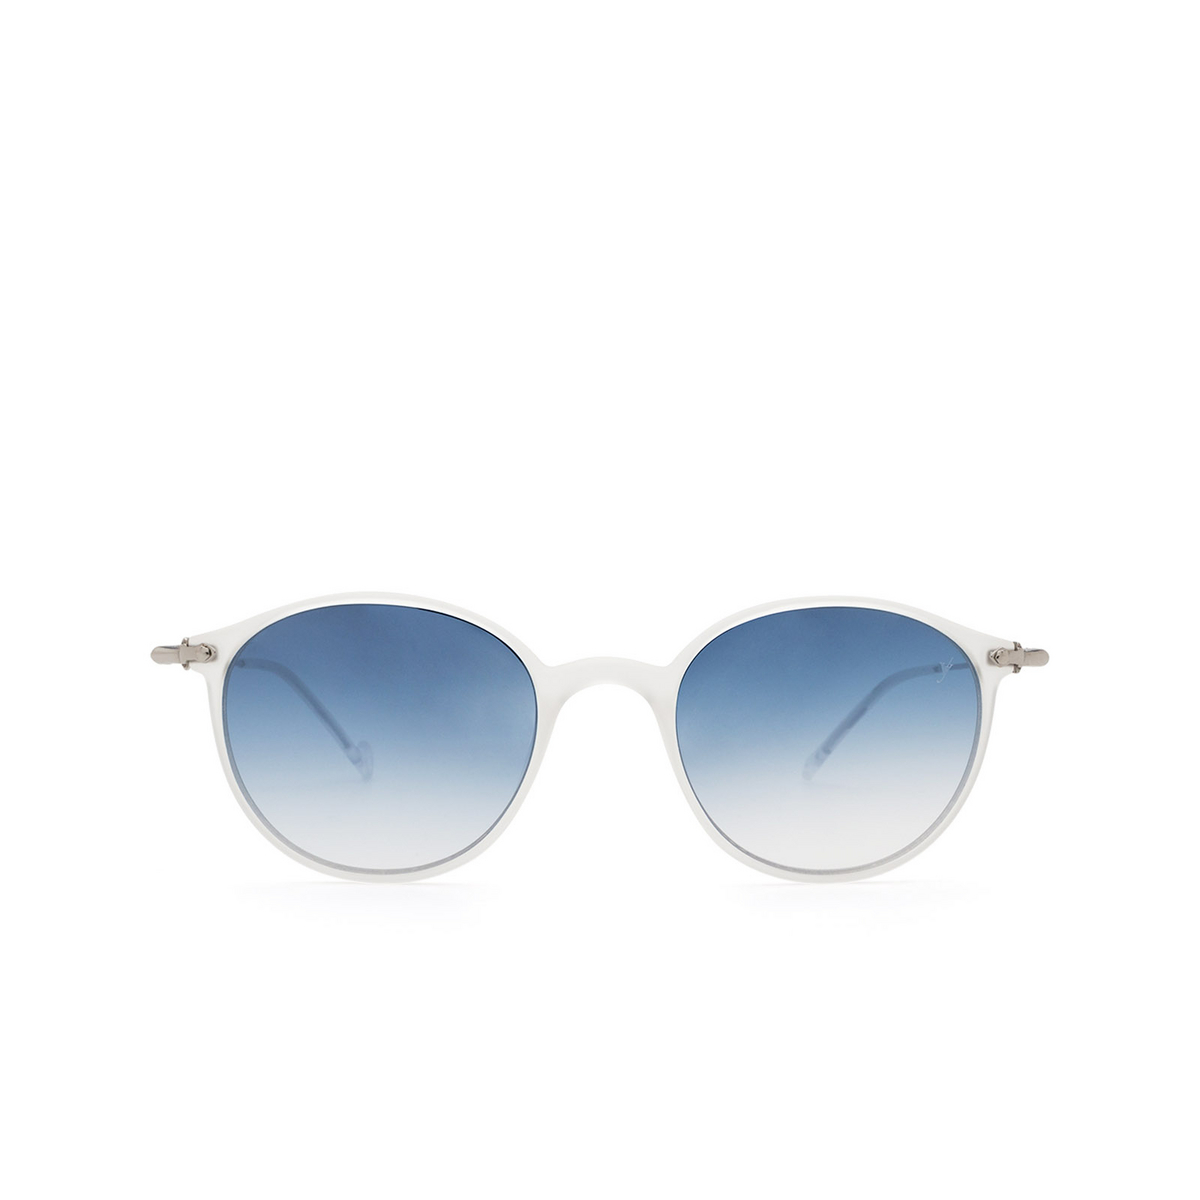 Eyepetizer® Round Sunglasses: Longisland color Crystal C.F-1-26F - front view.